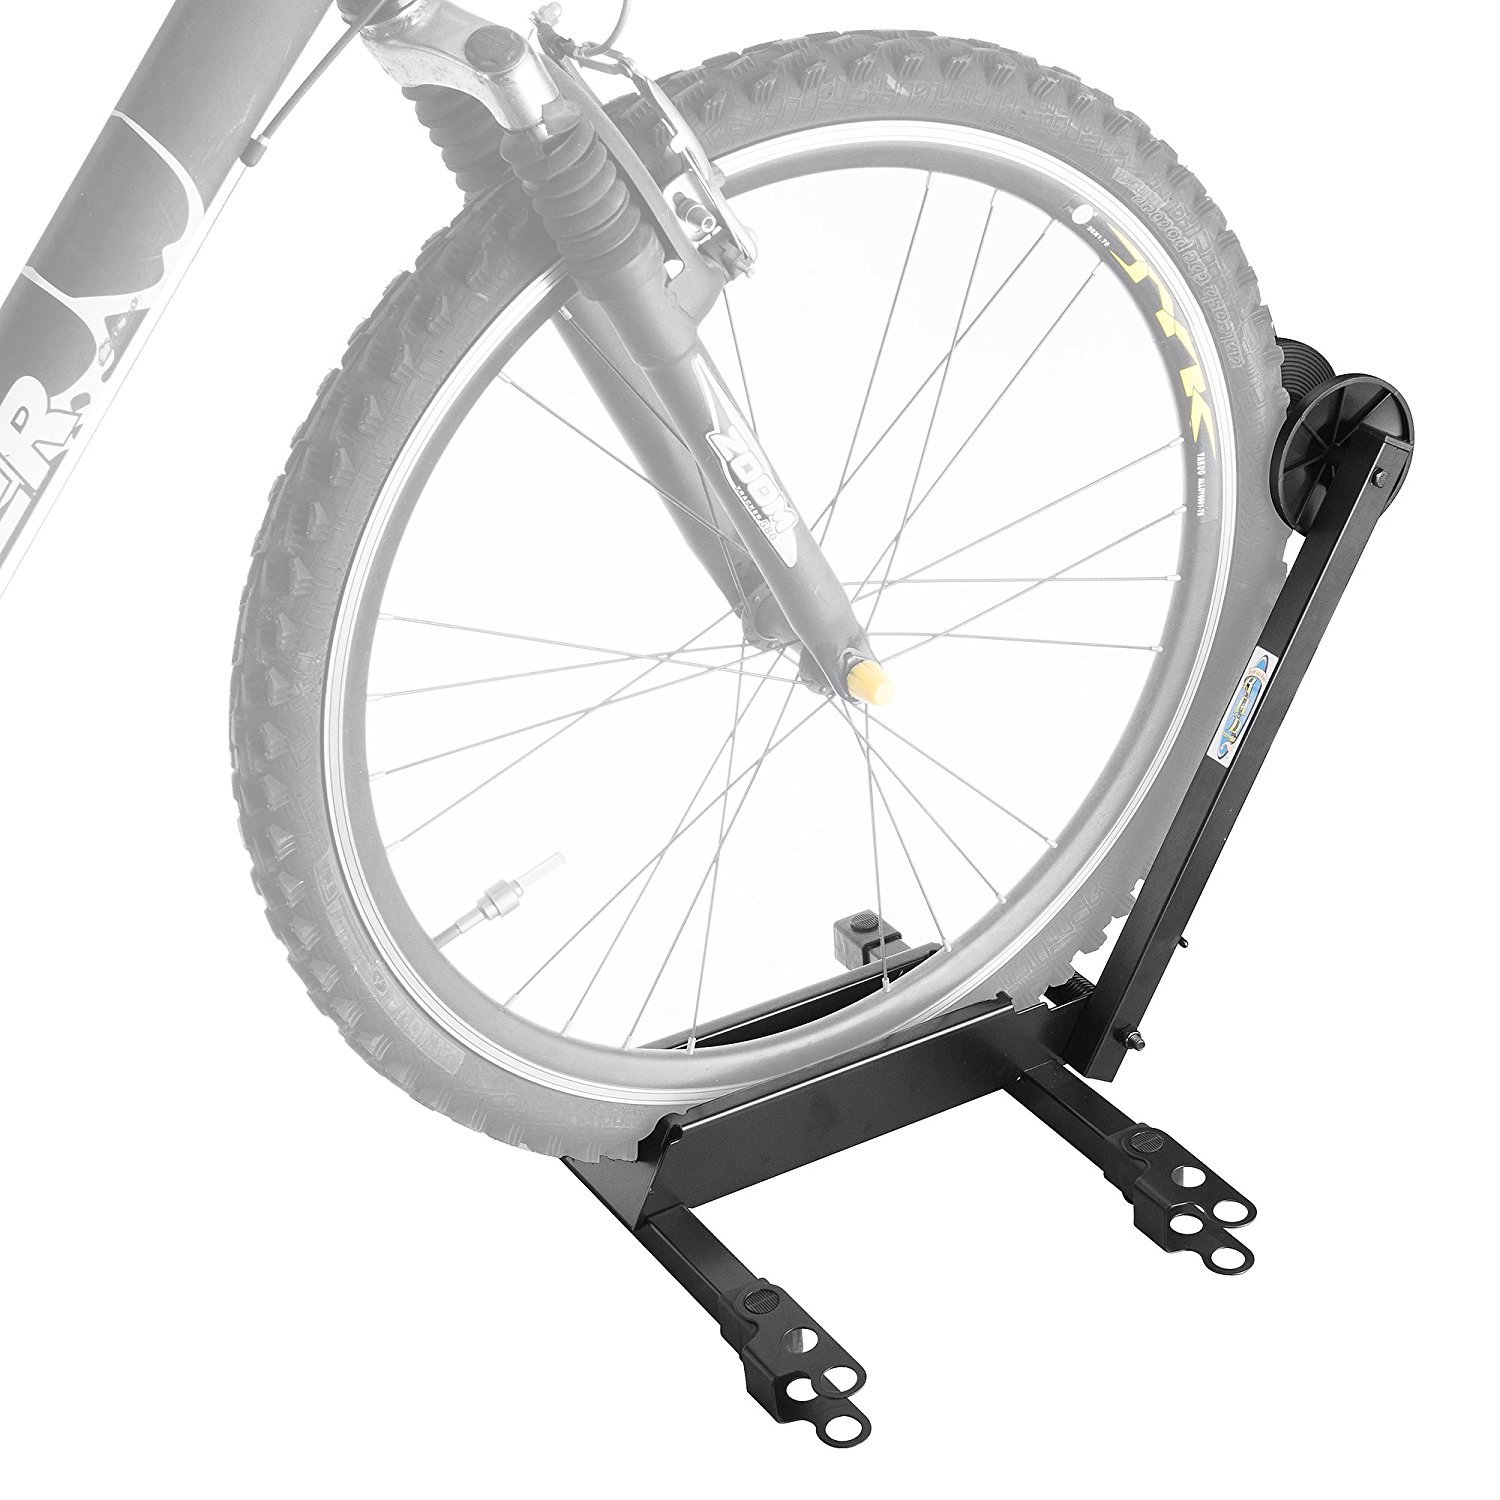 EZConnect Bicycle Storage Floor Stand Foldable Bike Rack, Designed for bikes with 20mm wide tires on 650C & 700C road wheel to 2.4 wide. MTB/BMX.., By RAD Cycle Products